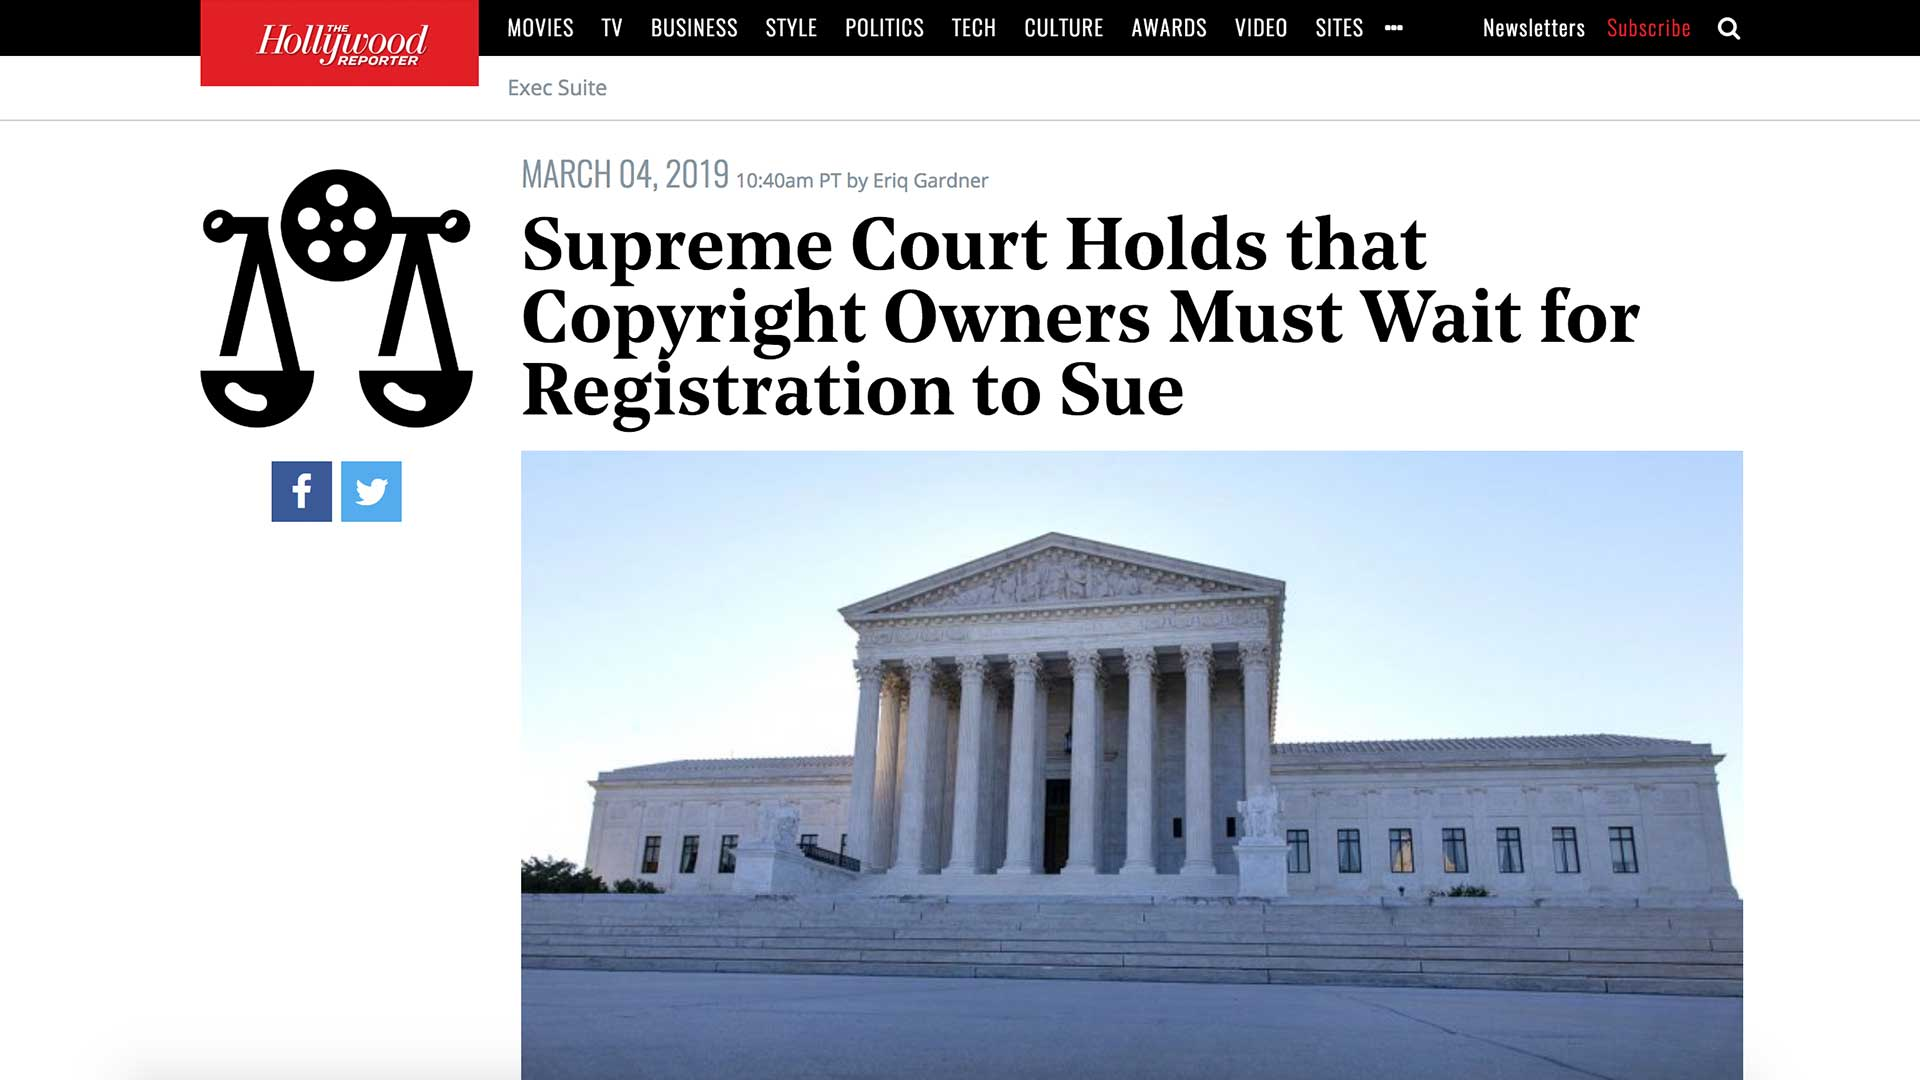 Fairness Rocks News Supreme Court Holds that Copyright Owners Must Wait for Registration to Sue